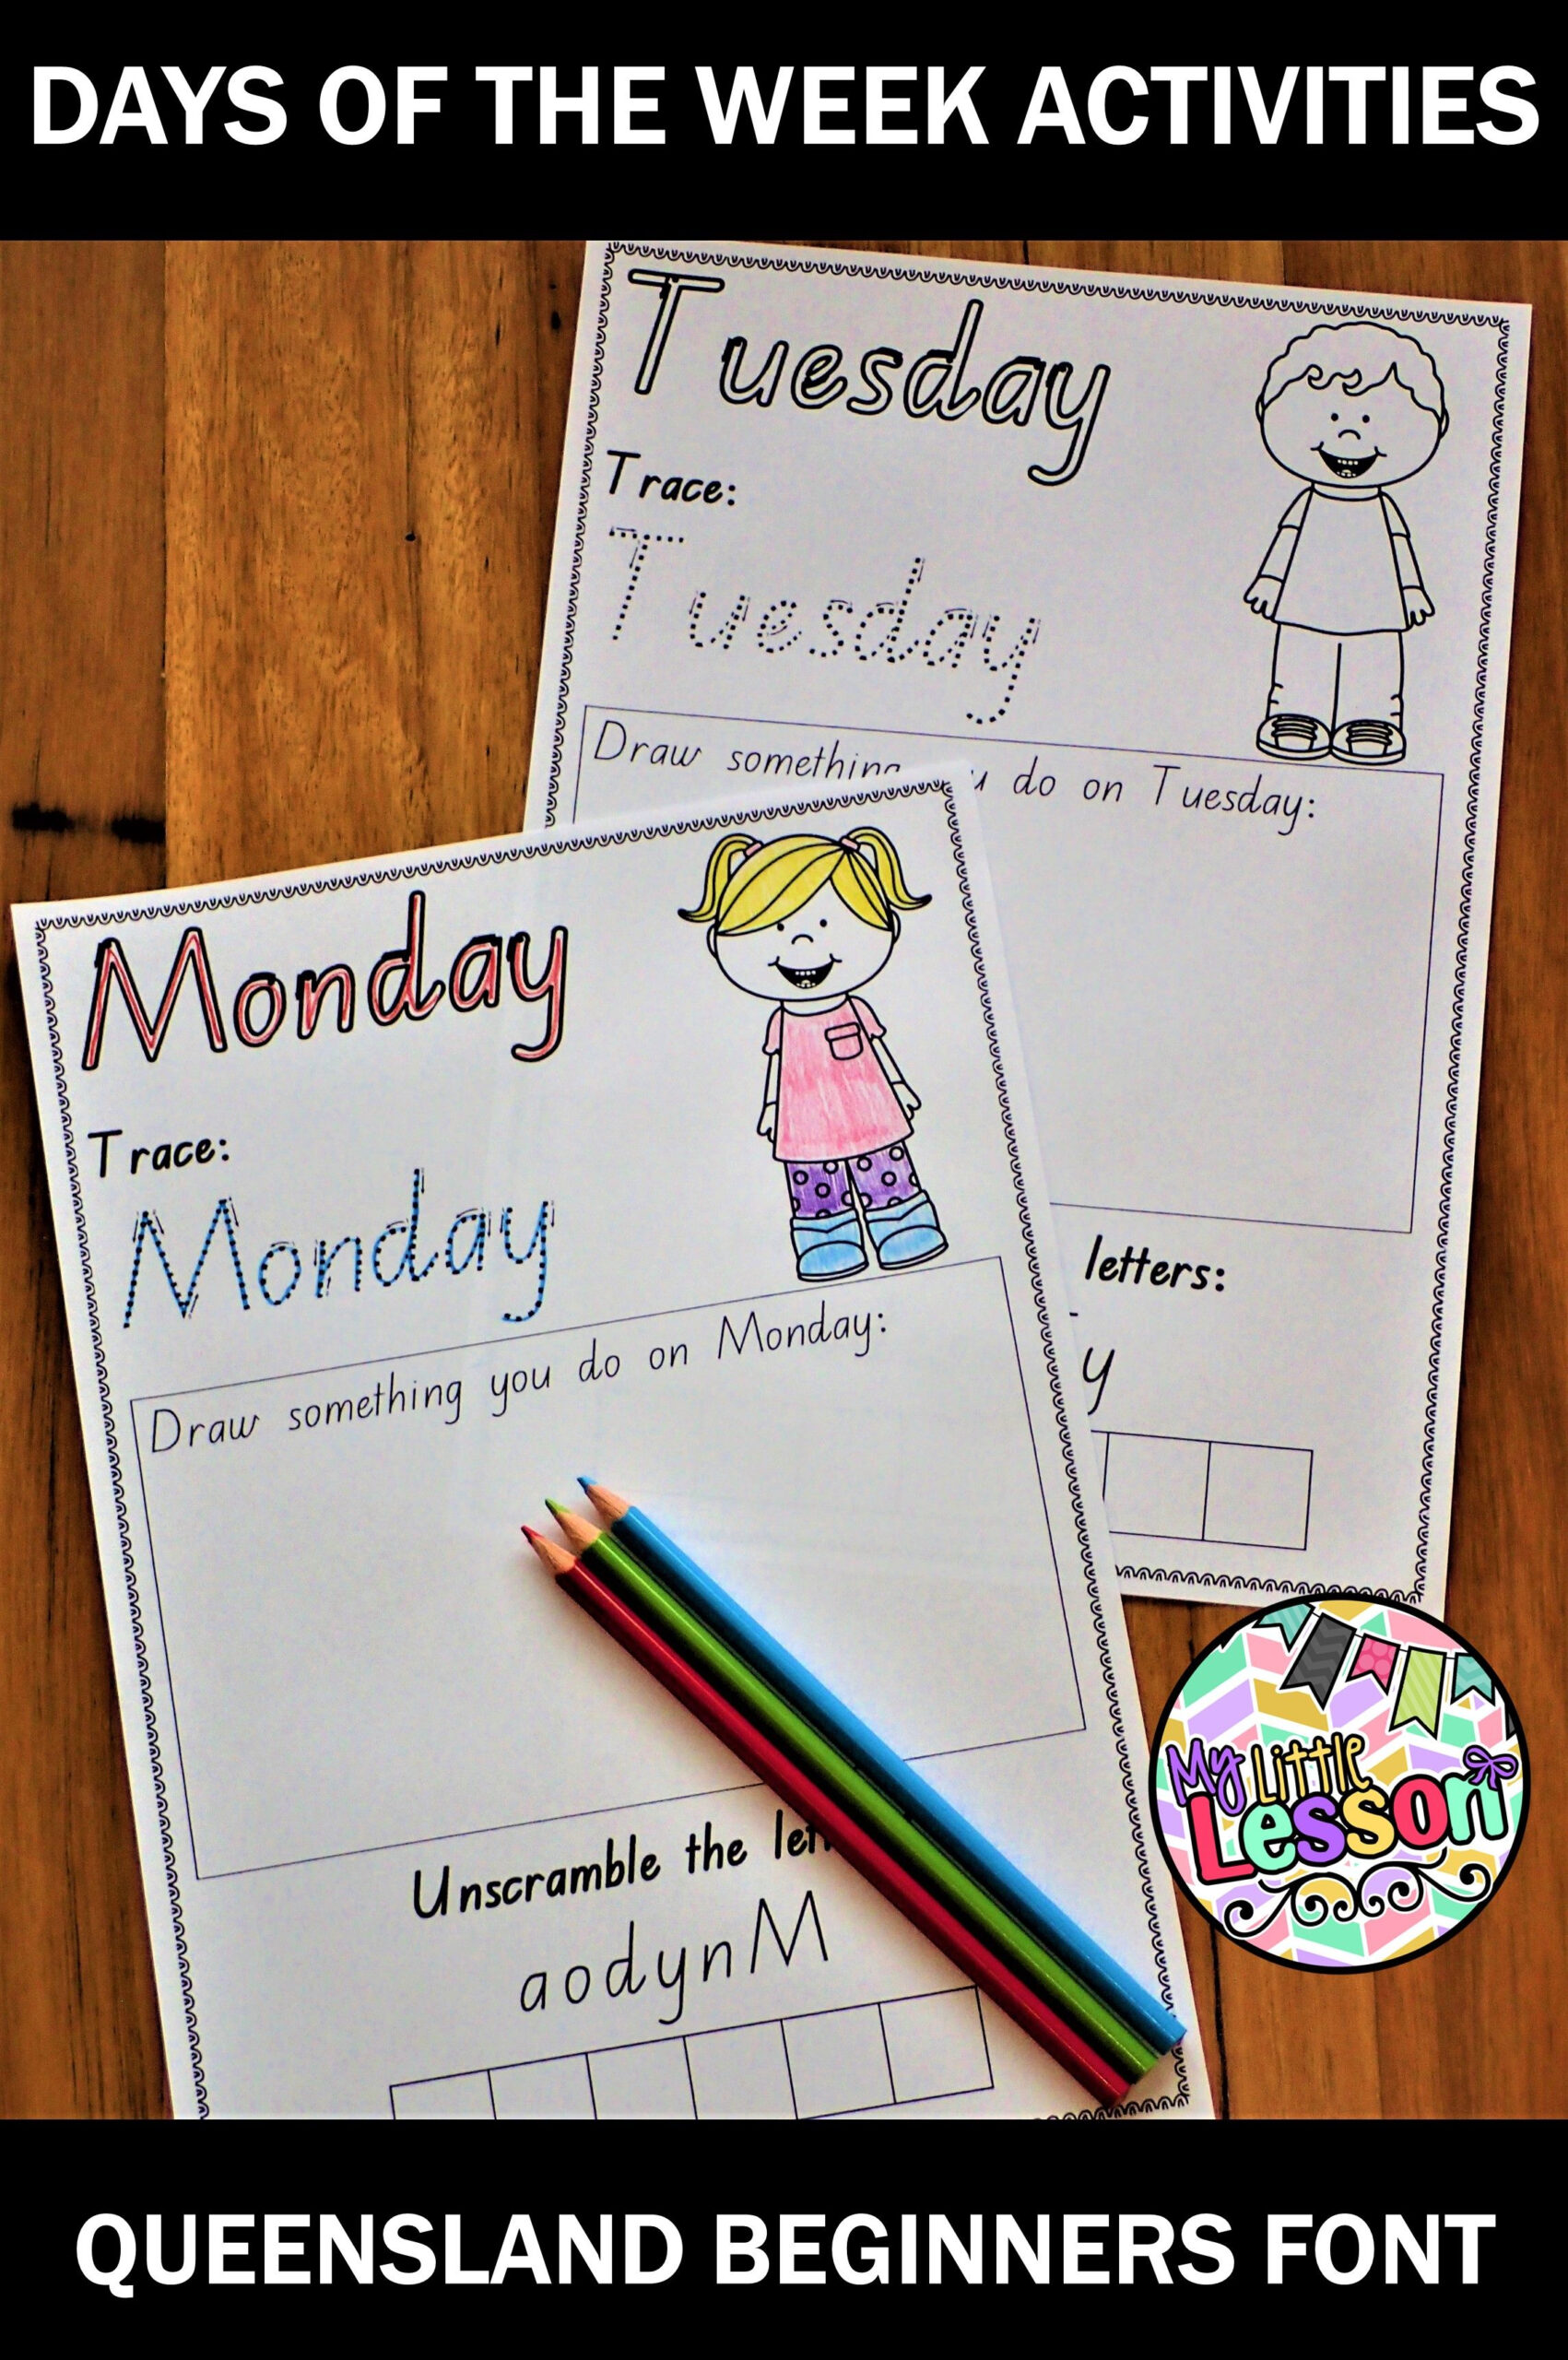 Days Of The Week Worksheets Qld Beginners Font (With Images within Name Tracing Template Qld Font